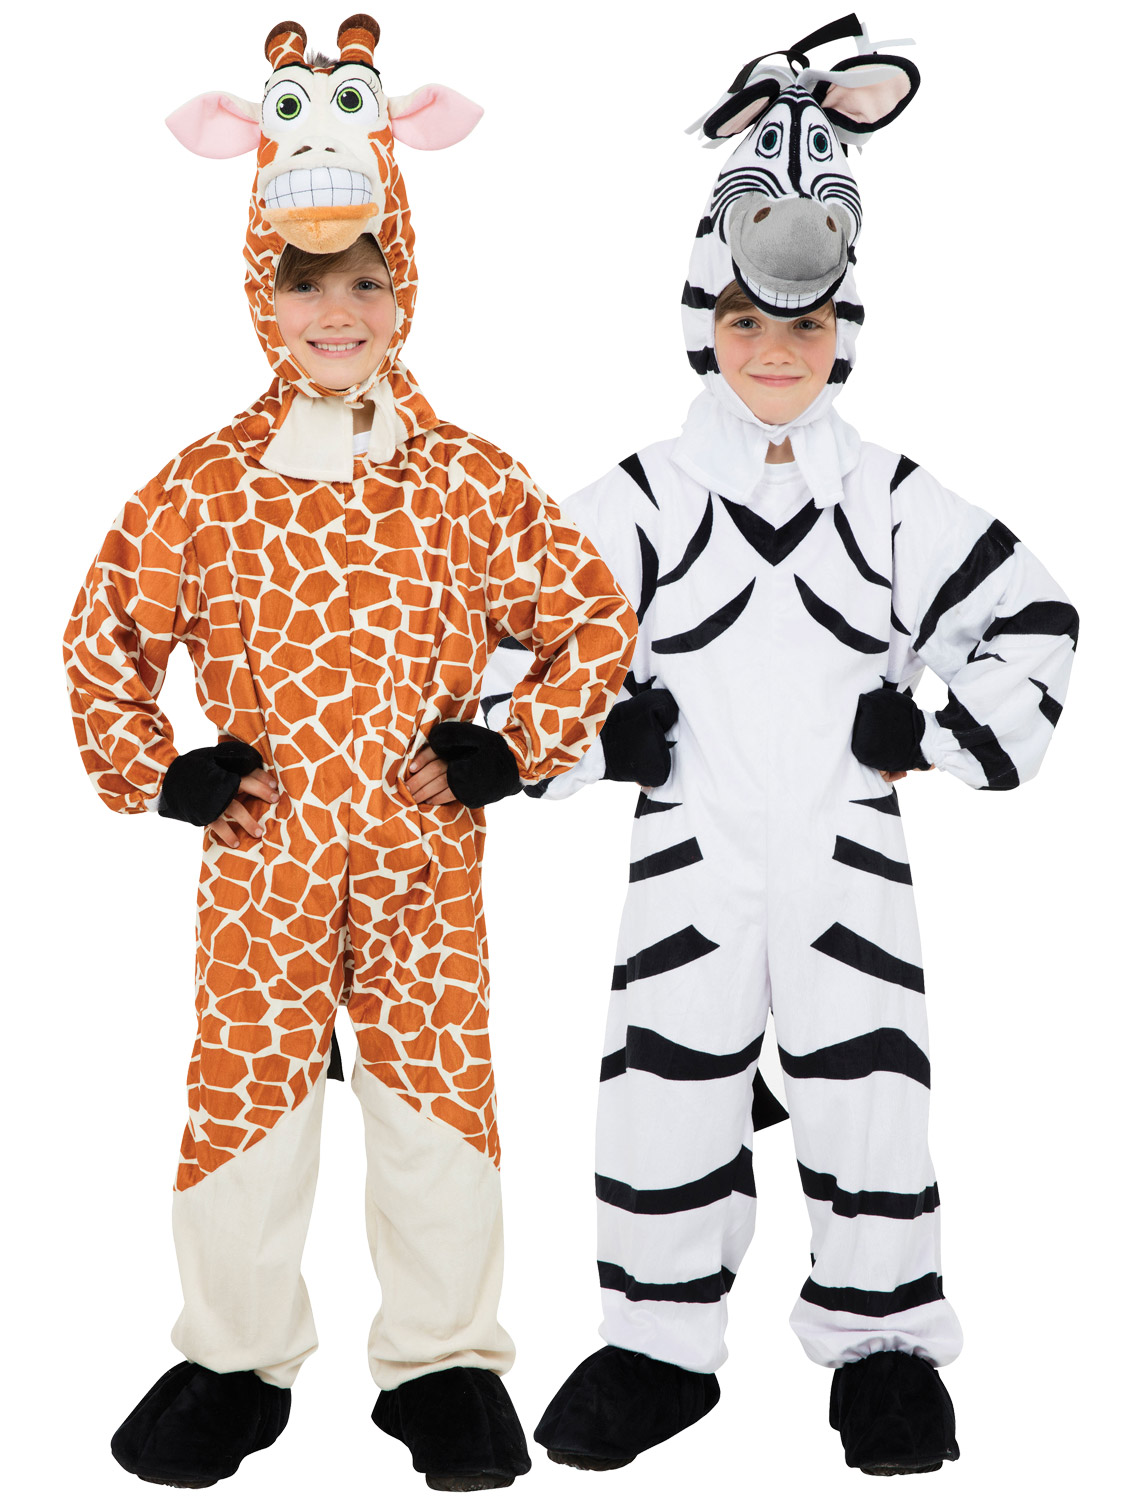 Transform your child into a Zoo Animal with either of these cute Kids Giraffe or Zebra Outfitsu2026 Ideal for Book Week!  sc 1 st  eBay & Childs Giraffe Zebra Costume Boy Girl Animal Zoo Fancy Dress Book ...